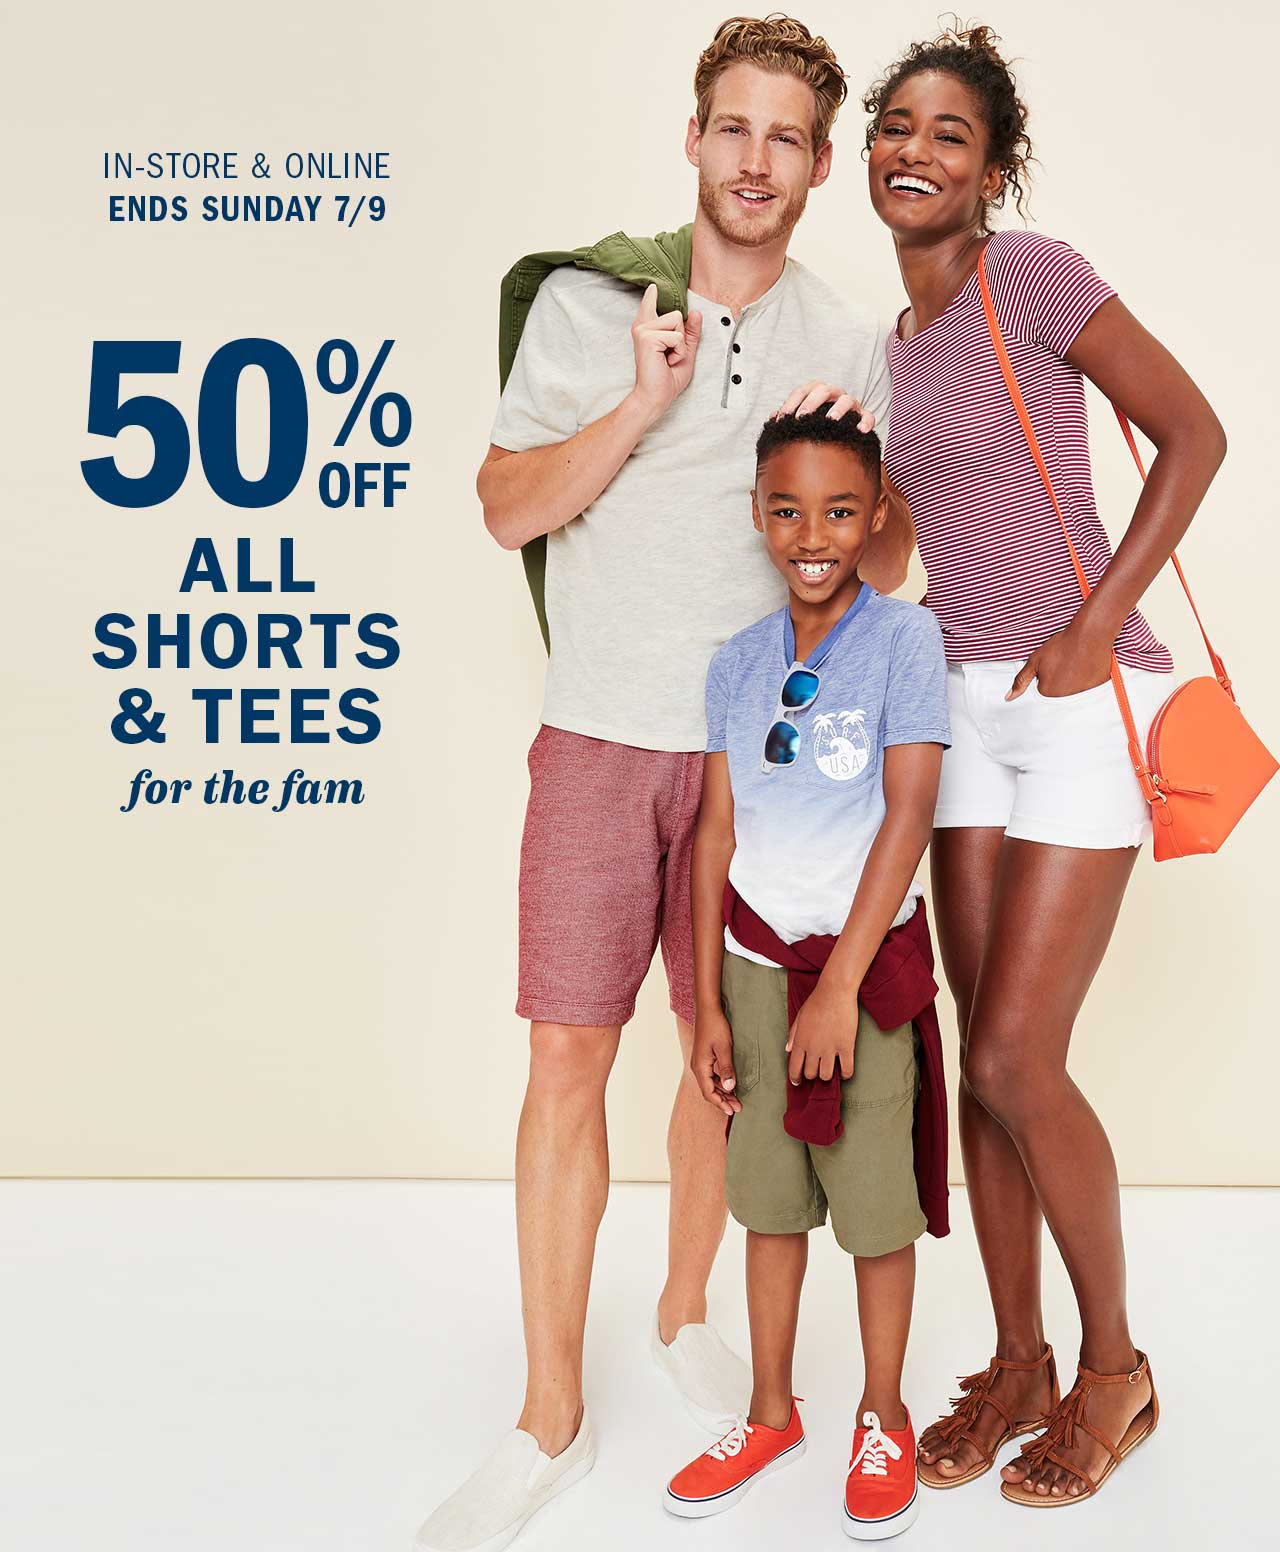 IN-STORE & ONLINE ENDS SUNDAY 7/9 | 50% OFF ALL SHORTS & TEES for the fam